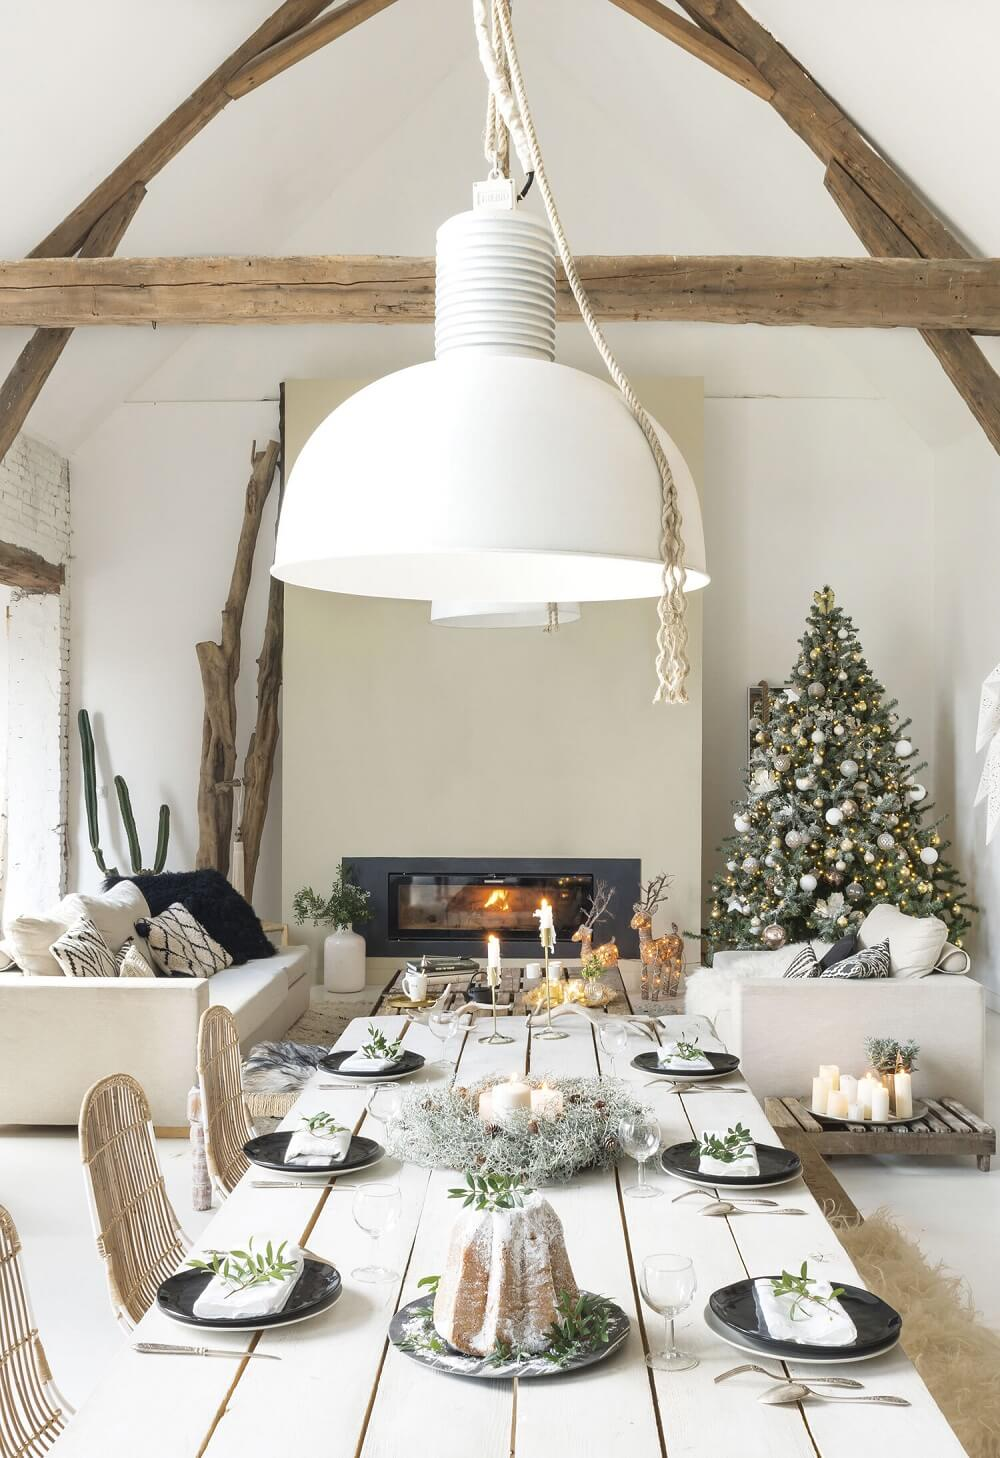 Christmas Decor in a Rustic French Barn Home